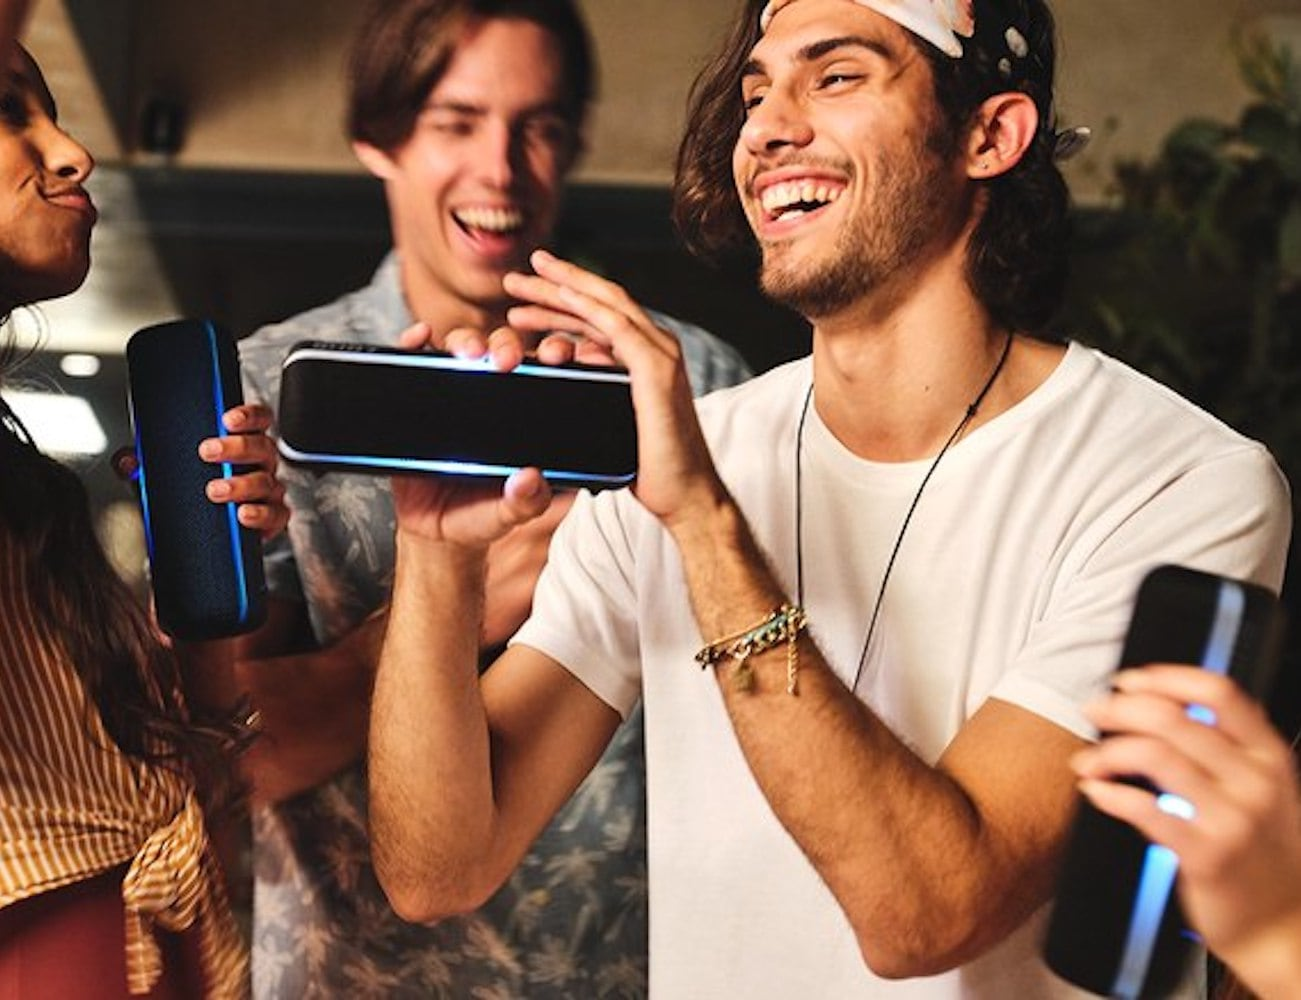 Sony SRS XB22 Extra Bass Portable Bluetooth Party Speaker keeps your party going